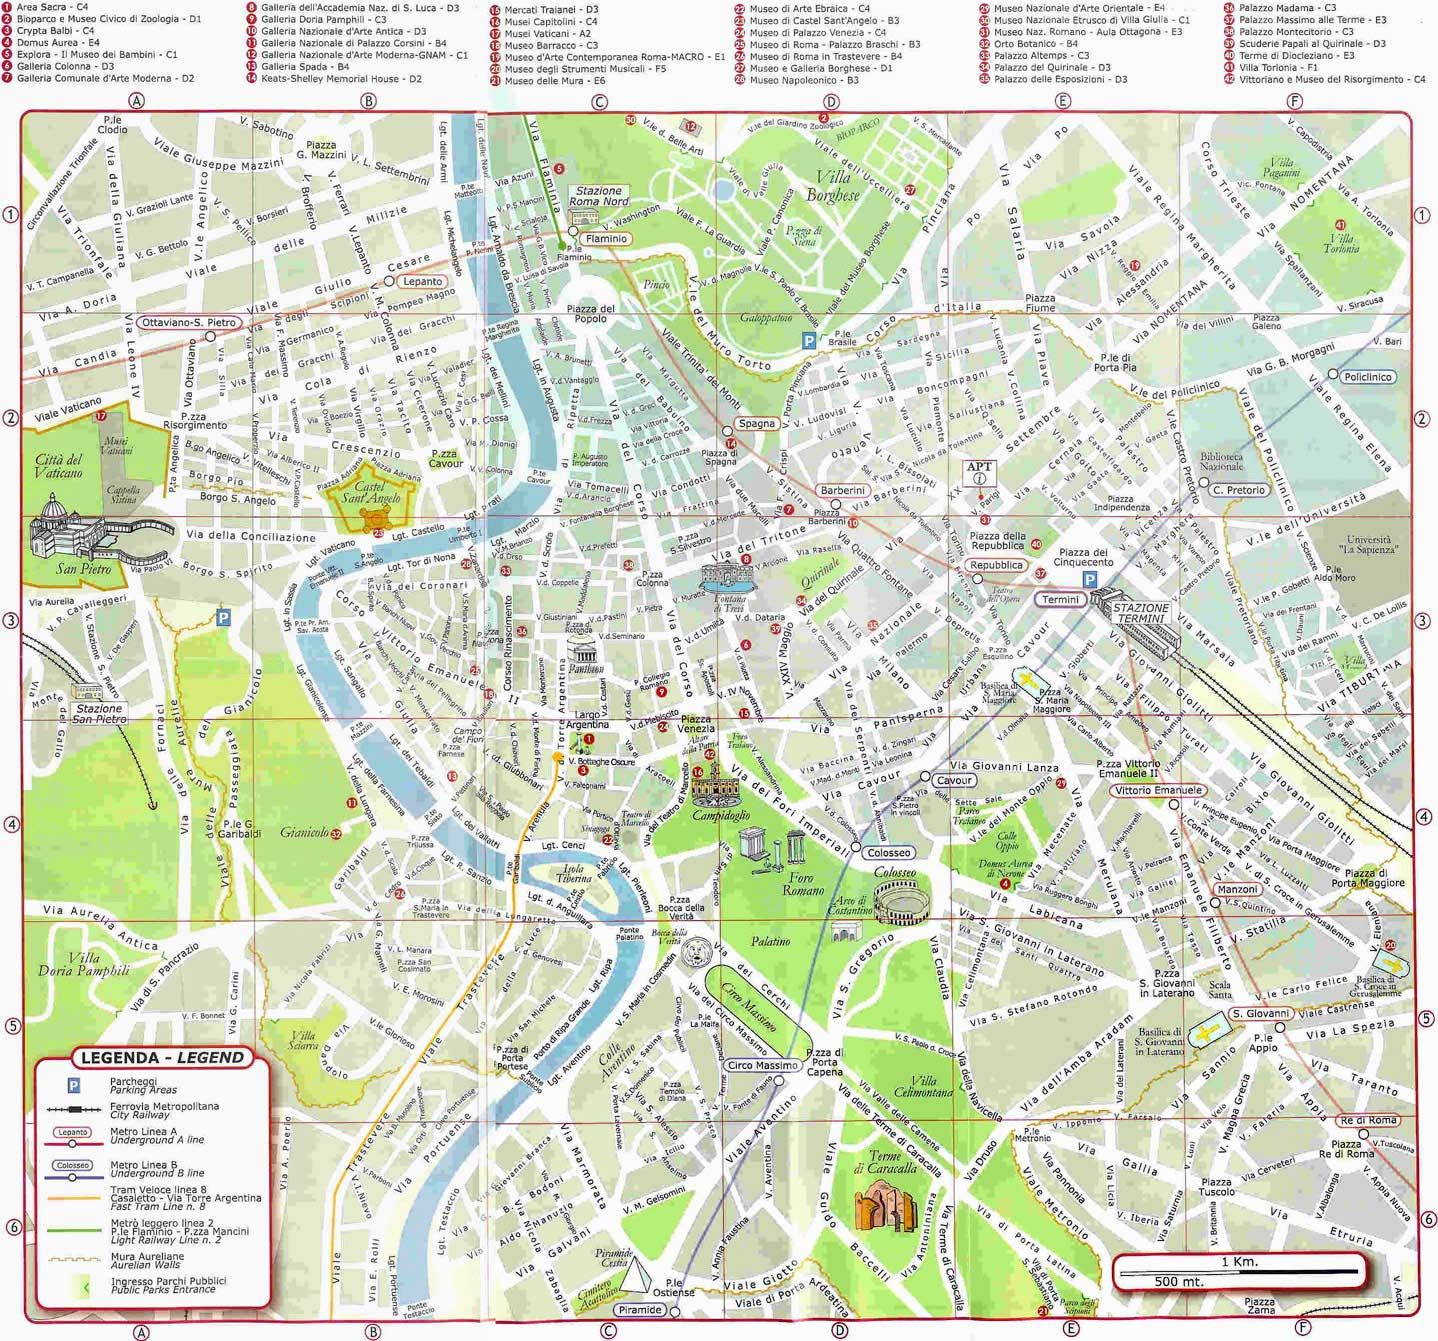 rome walking tour map pdf  google search  roma  pinterest  - detailed tourist map of rome italy